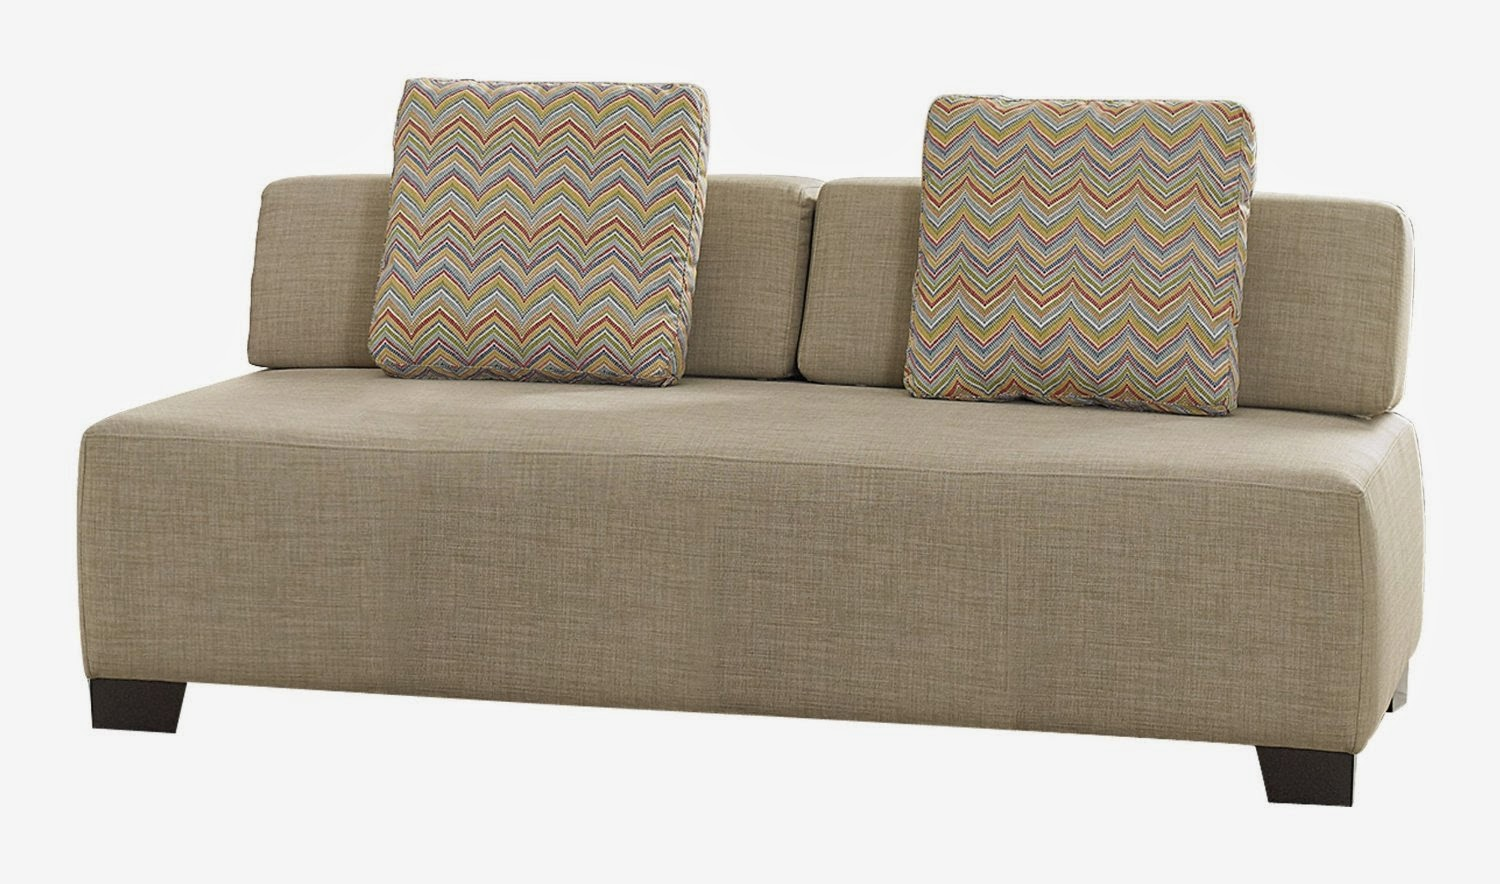 best sleeper sofas sofa beds 2010 apartment therapy ...